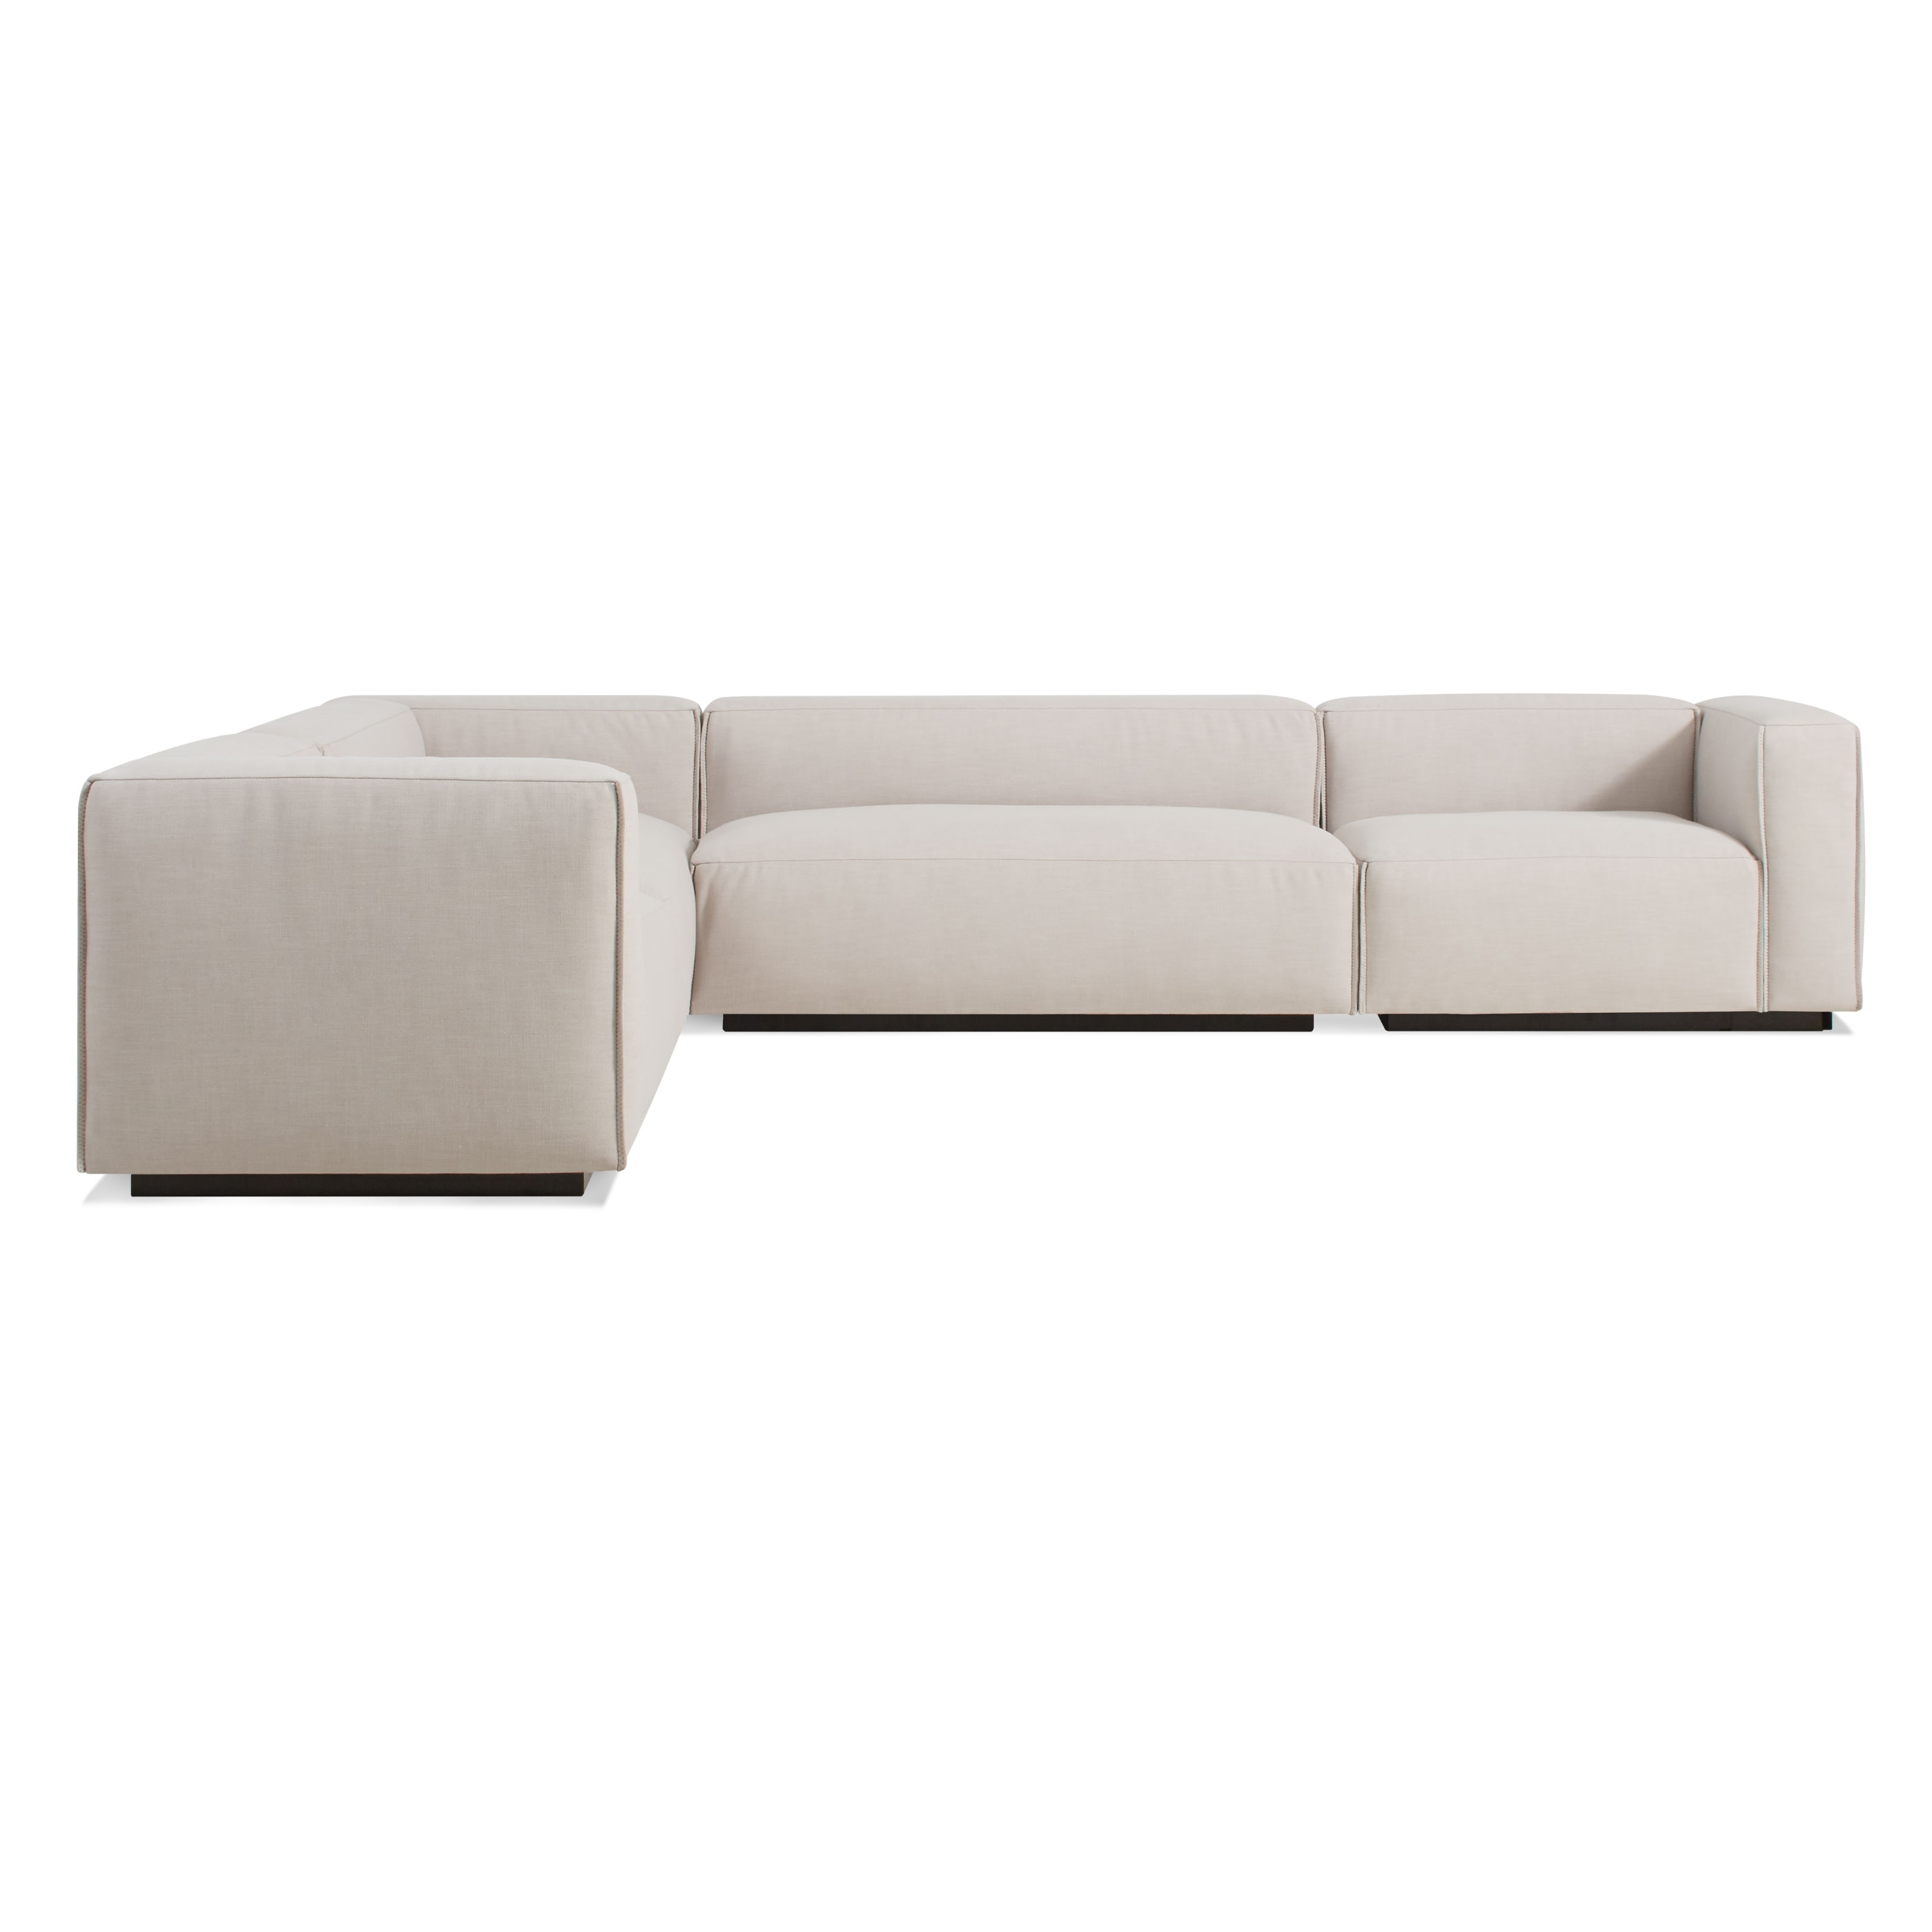 Cleon Large Modern Sectional Sofa   Blu Dot With Hawaii Sectional Sofas (View 7 of 10)